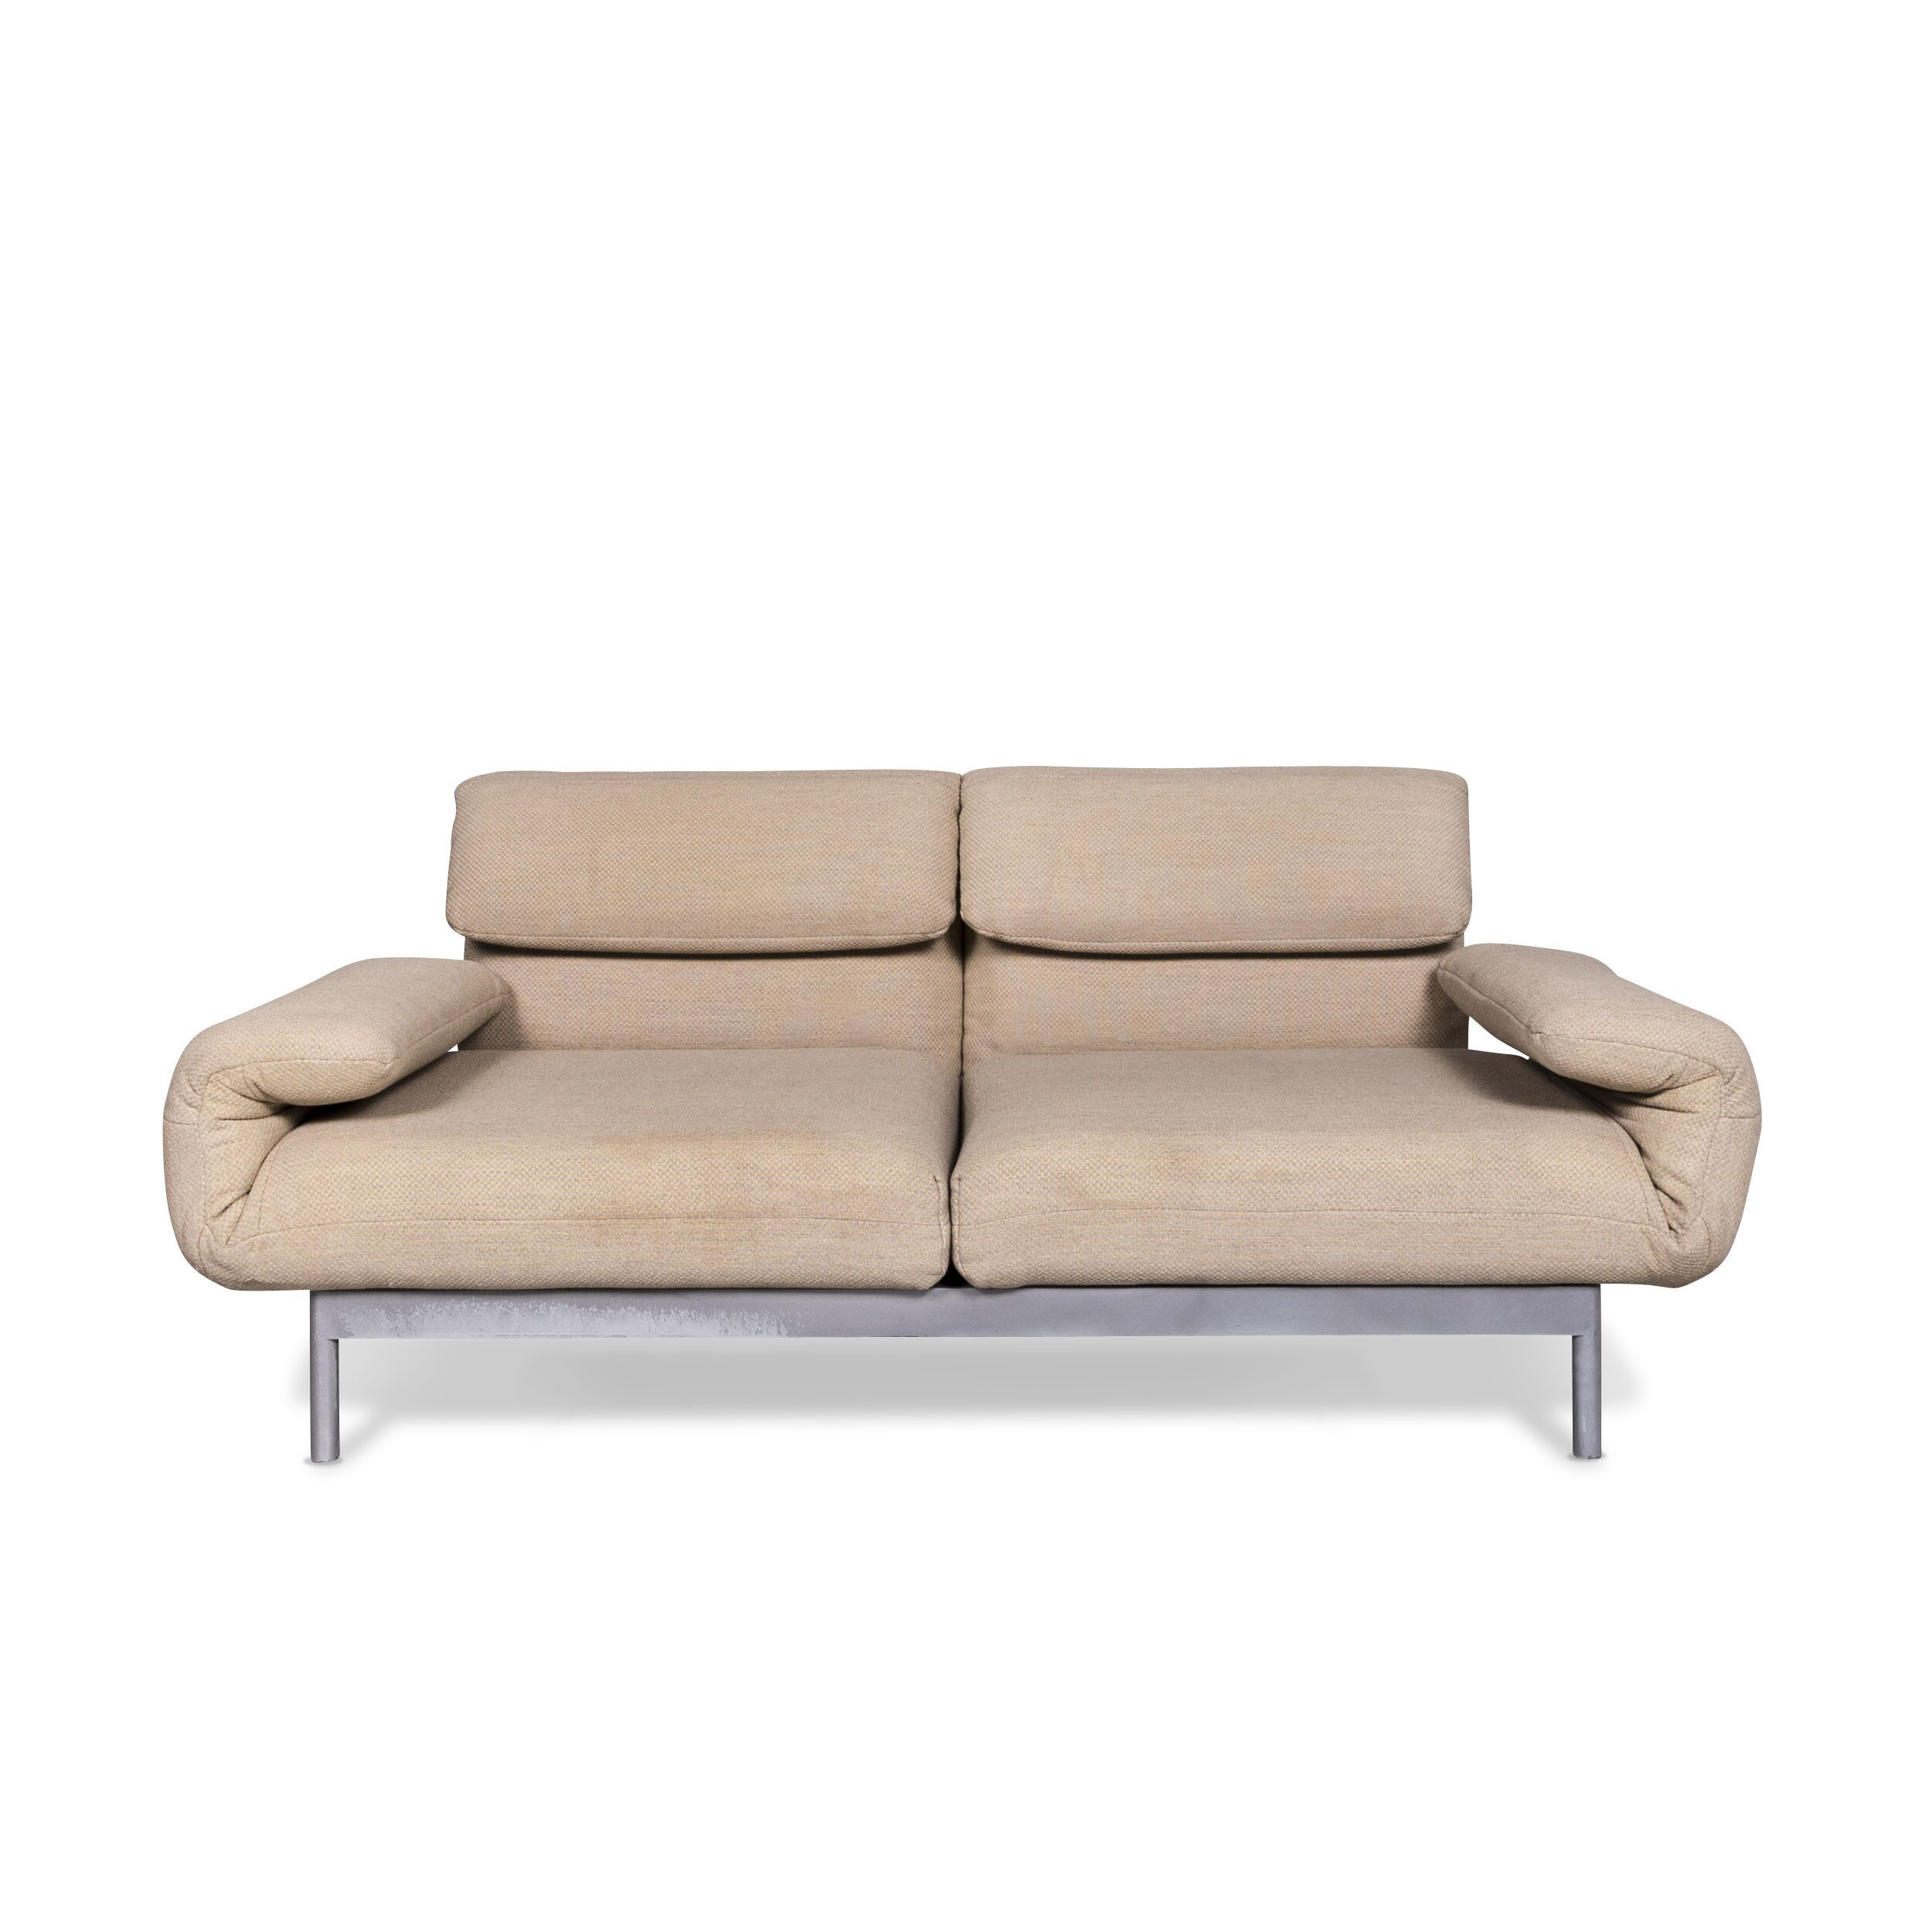 Wondrous Rolf Benz Plura Designer Fabric Sofa Beige Two Seater Relax Function Couch 9780 Home Interior And Landscaping Eliaenasavecom